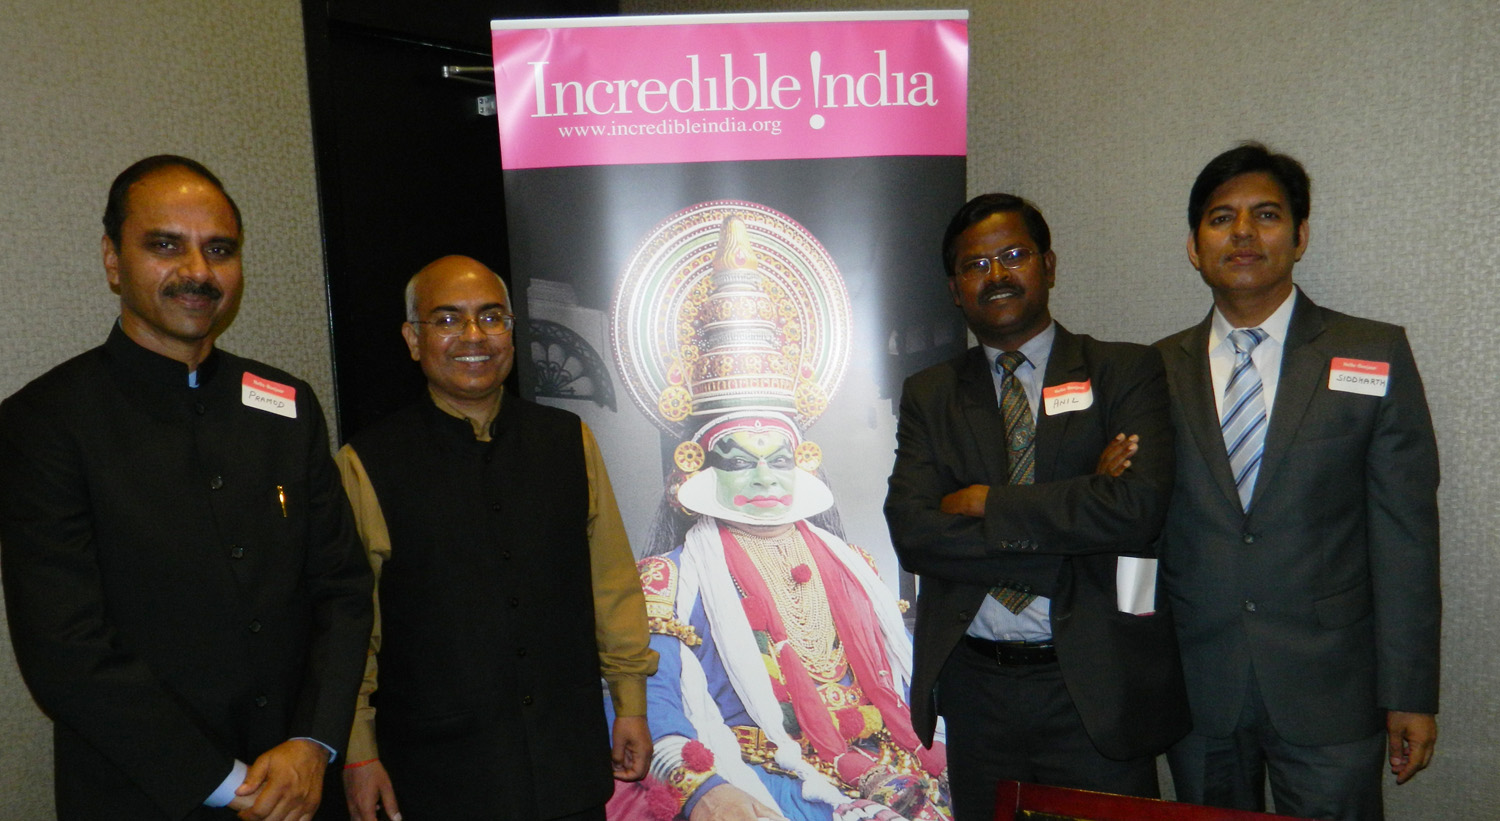 Services International puts India in the spotlight